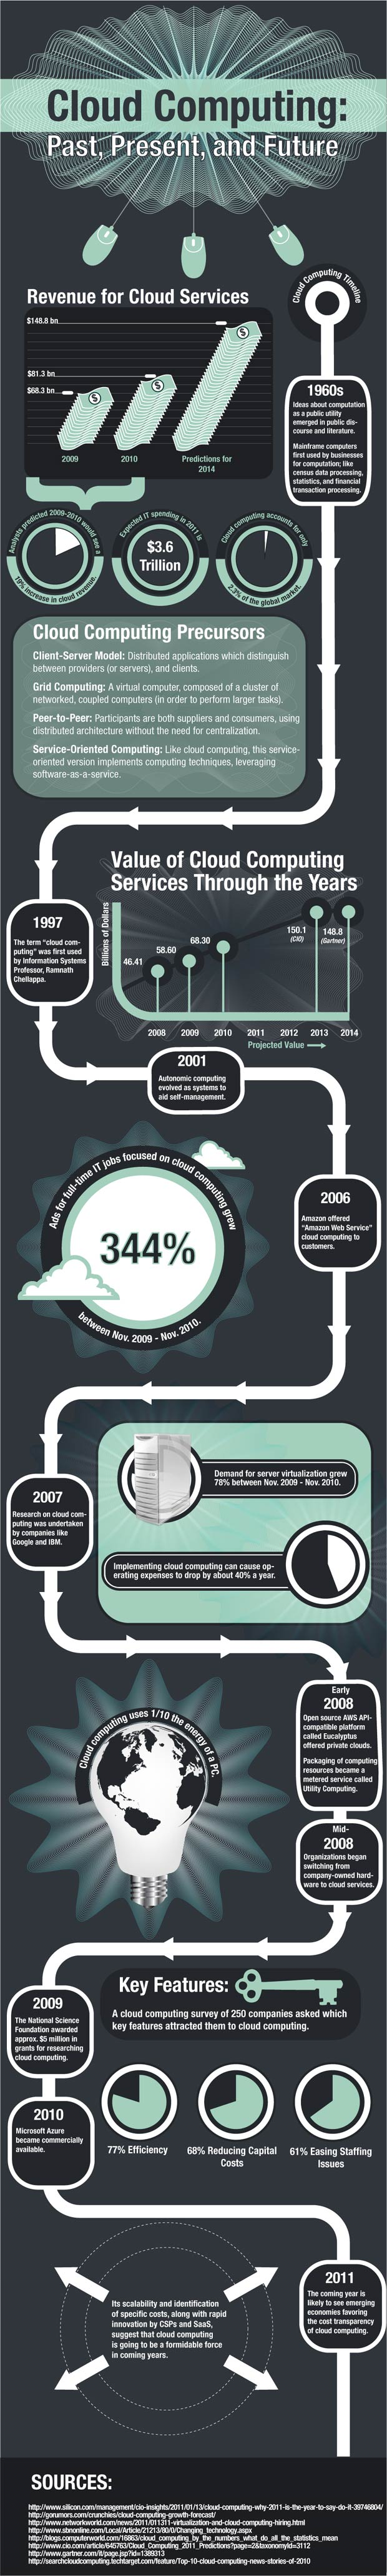 cloud computing history infographic